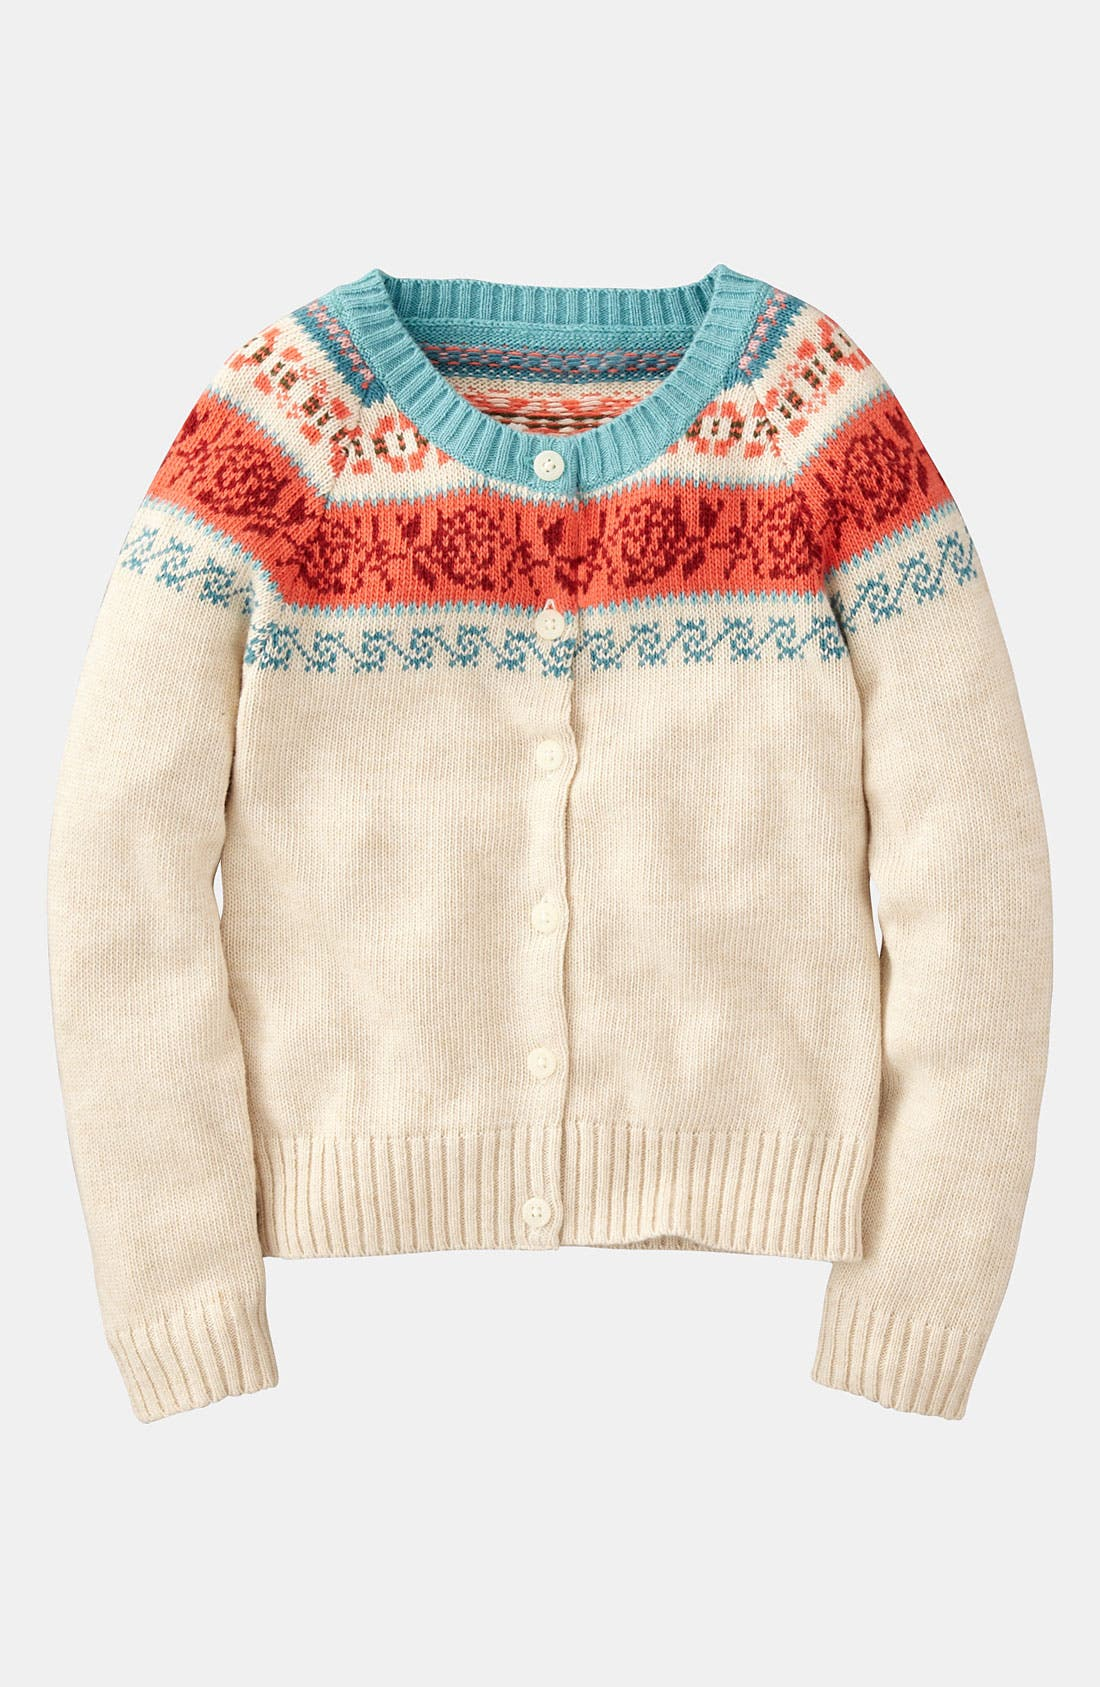 Alternate Image 1 Selected - Mini Boden Fair Isle Print Cardigan (Toddler)